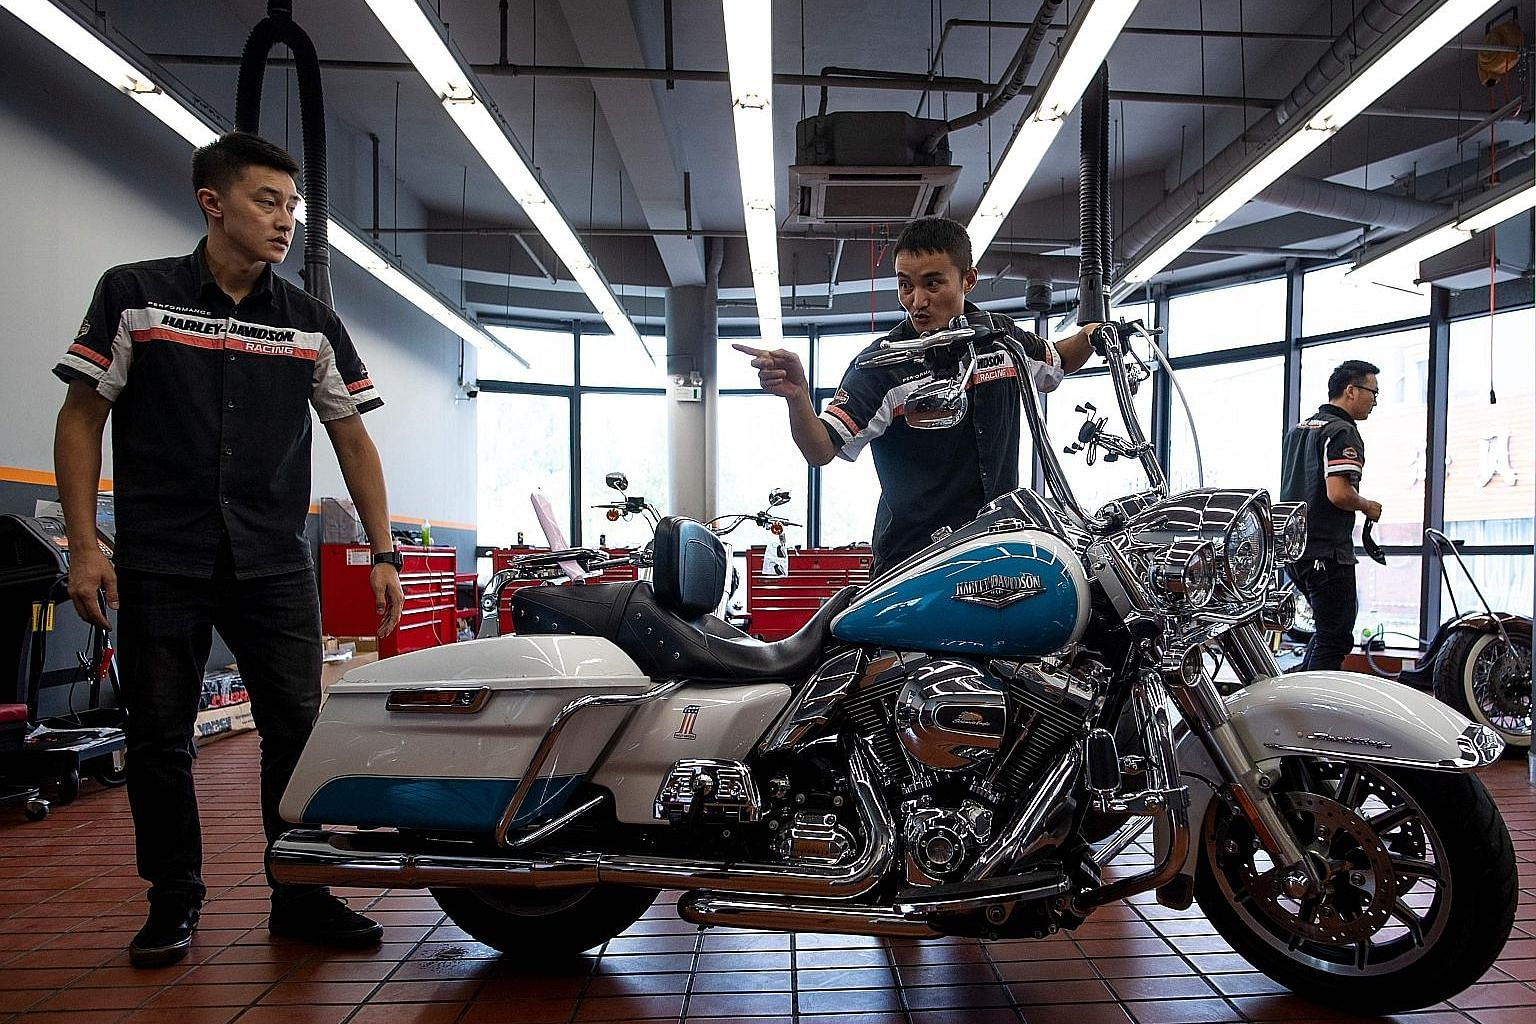 Workers preparing a Harley-Davidson motorcycle for sale at a dealership in Shanghai. From Harley-Davidson motorcycles and US bourbon to Chinese parts and machinery, the world's two largest economies have exchanged punitive tariffs across a wide swath